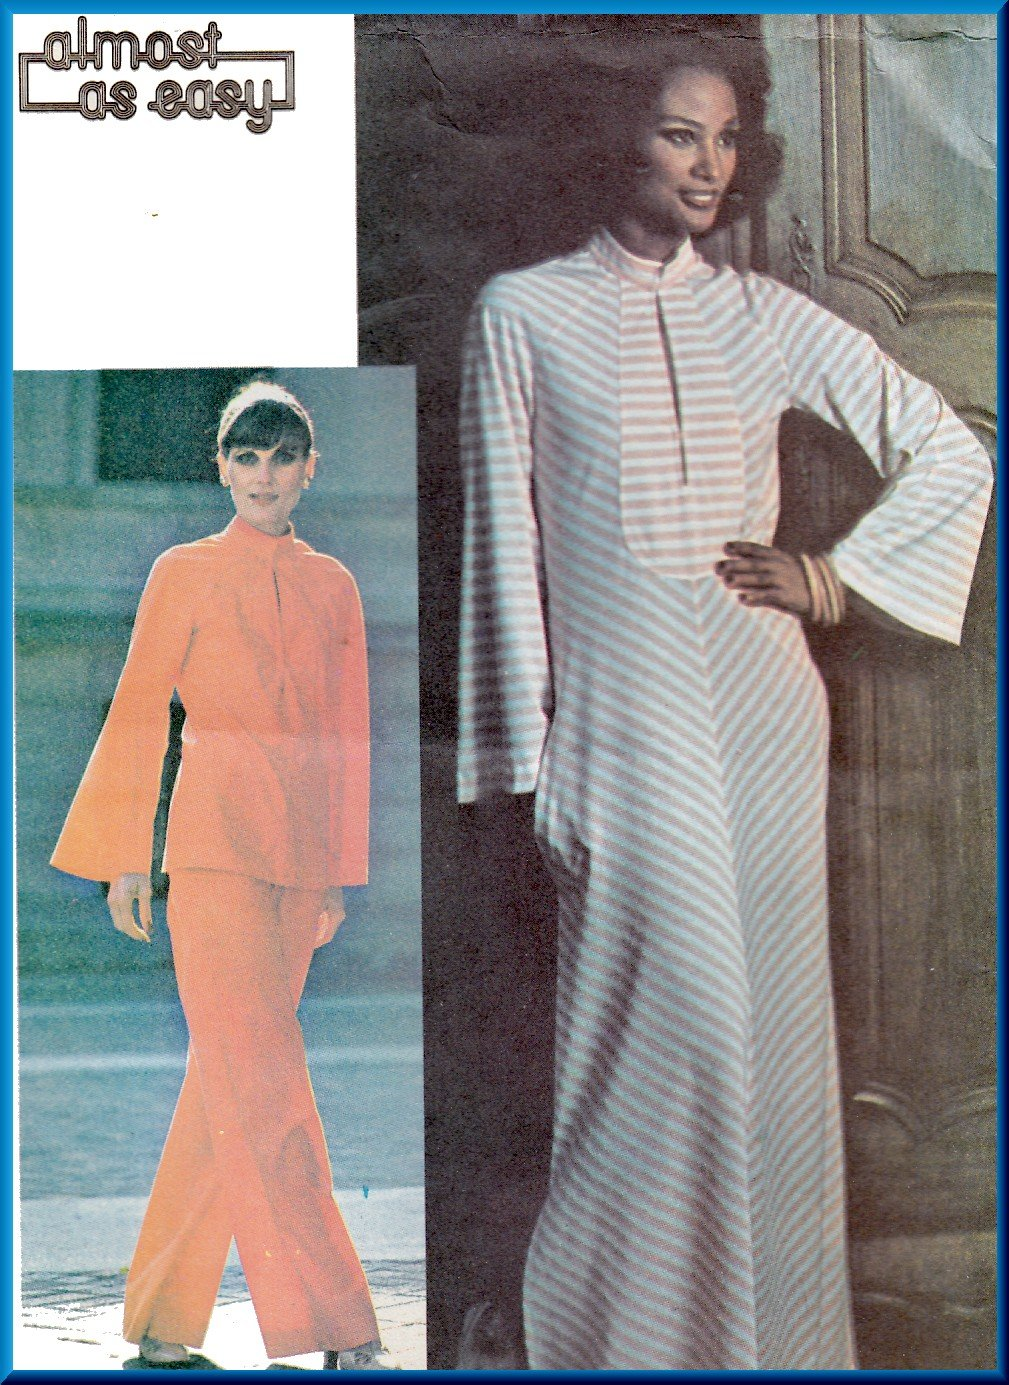 Vintage McCall's Sewing Pattern 4950 Size 12 Misses' 70s Dress Caftan Top Bell Sleeves Wide Pants